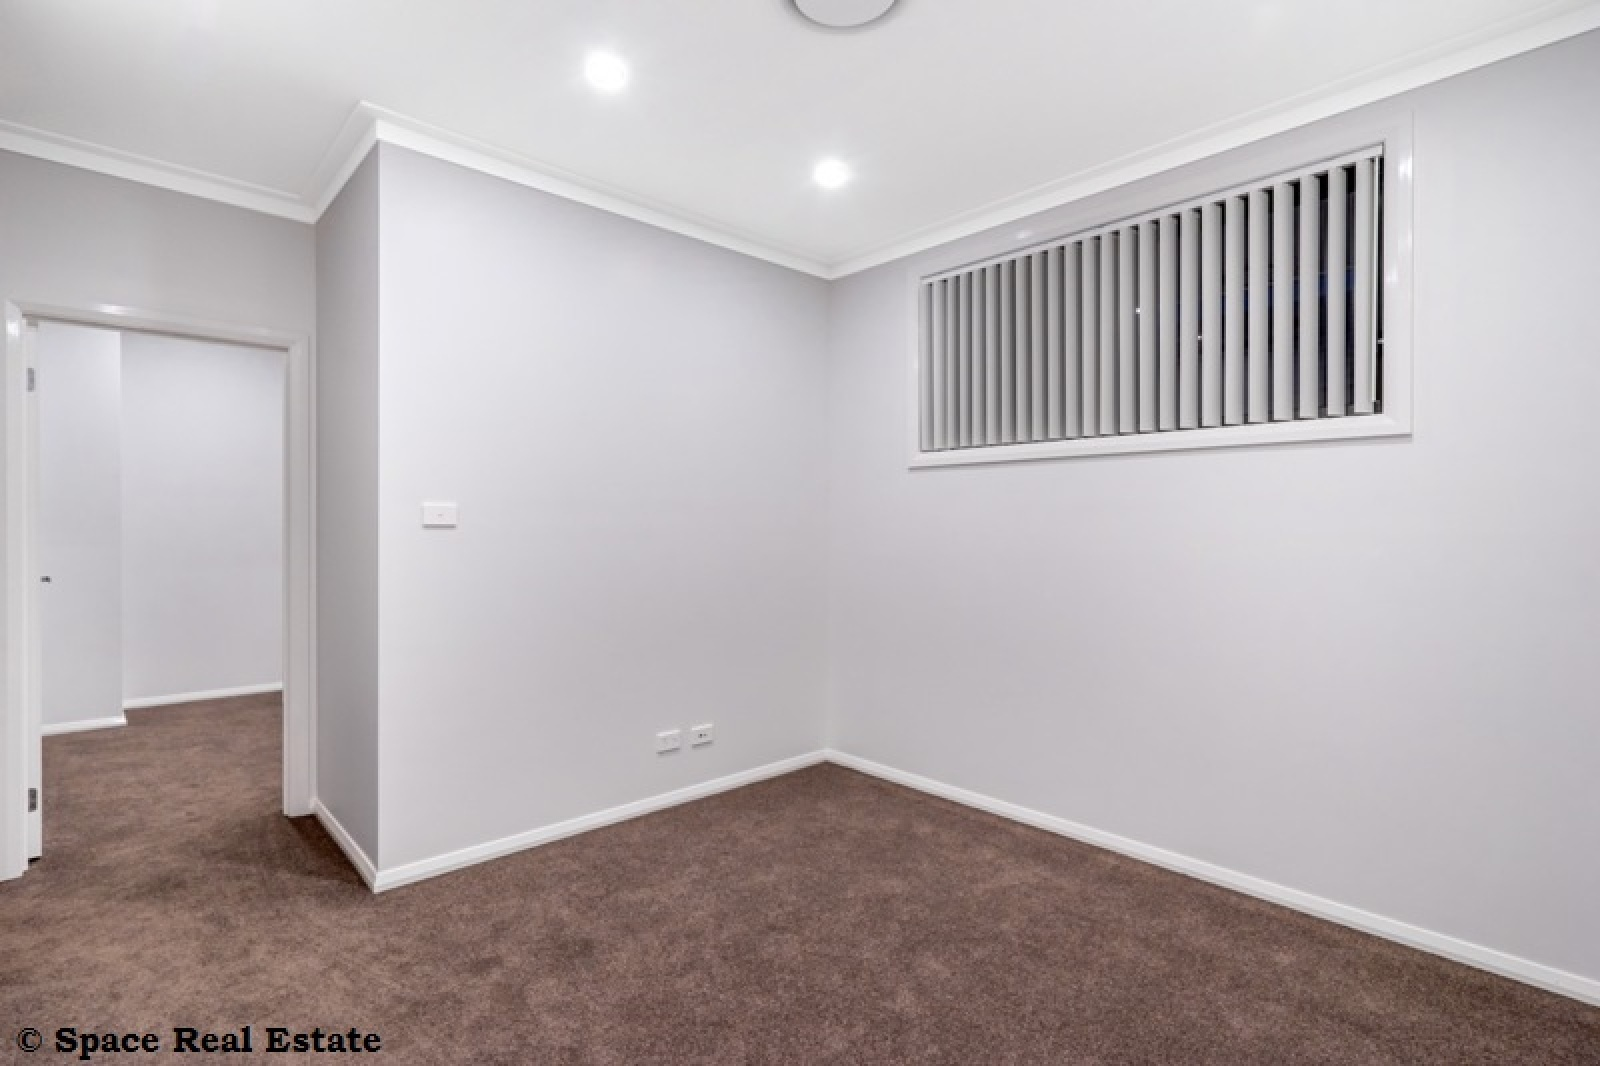 70b Longhurst Street,Oran Park,NSW,4 Bedrooms Bedrooms,3 BathroomsBathrooms,House,Longhurst Street,1160